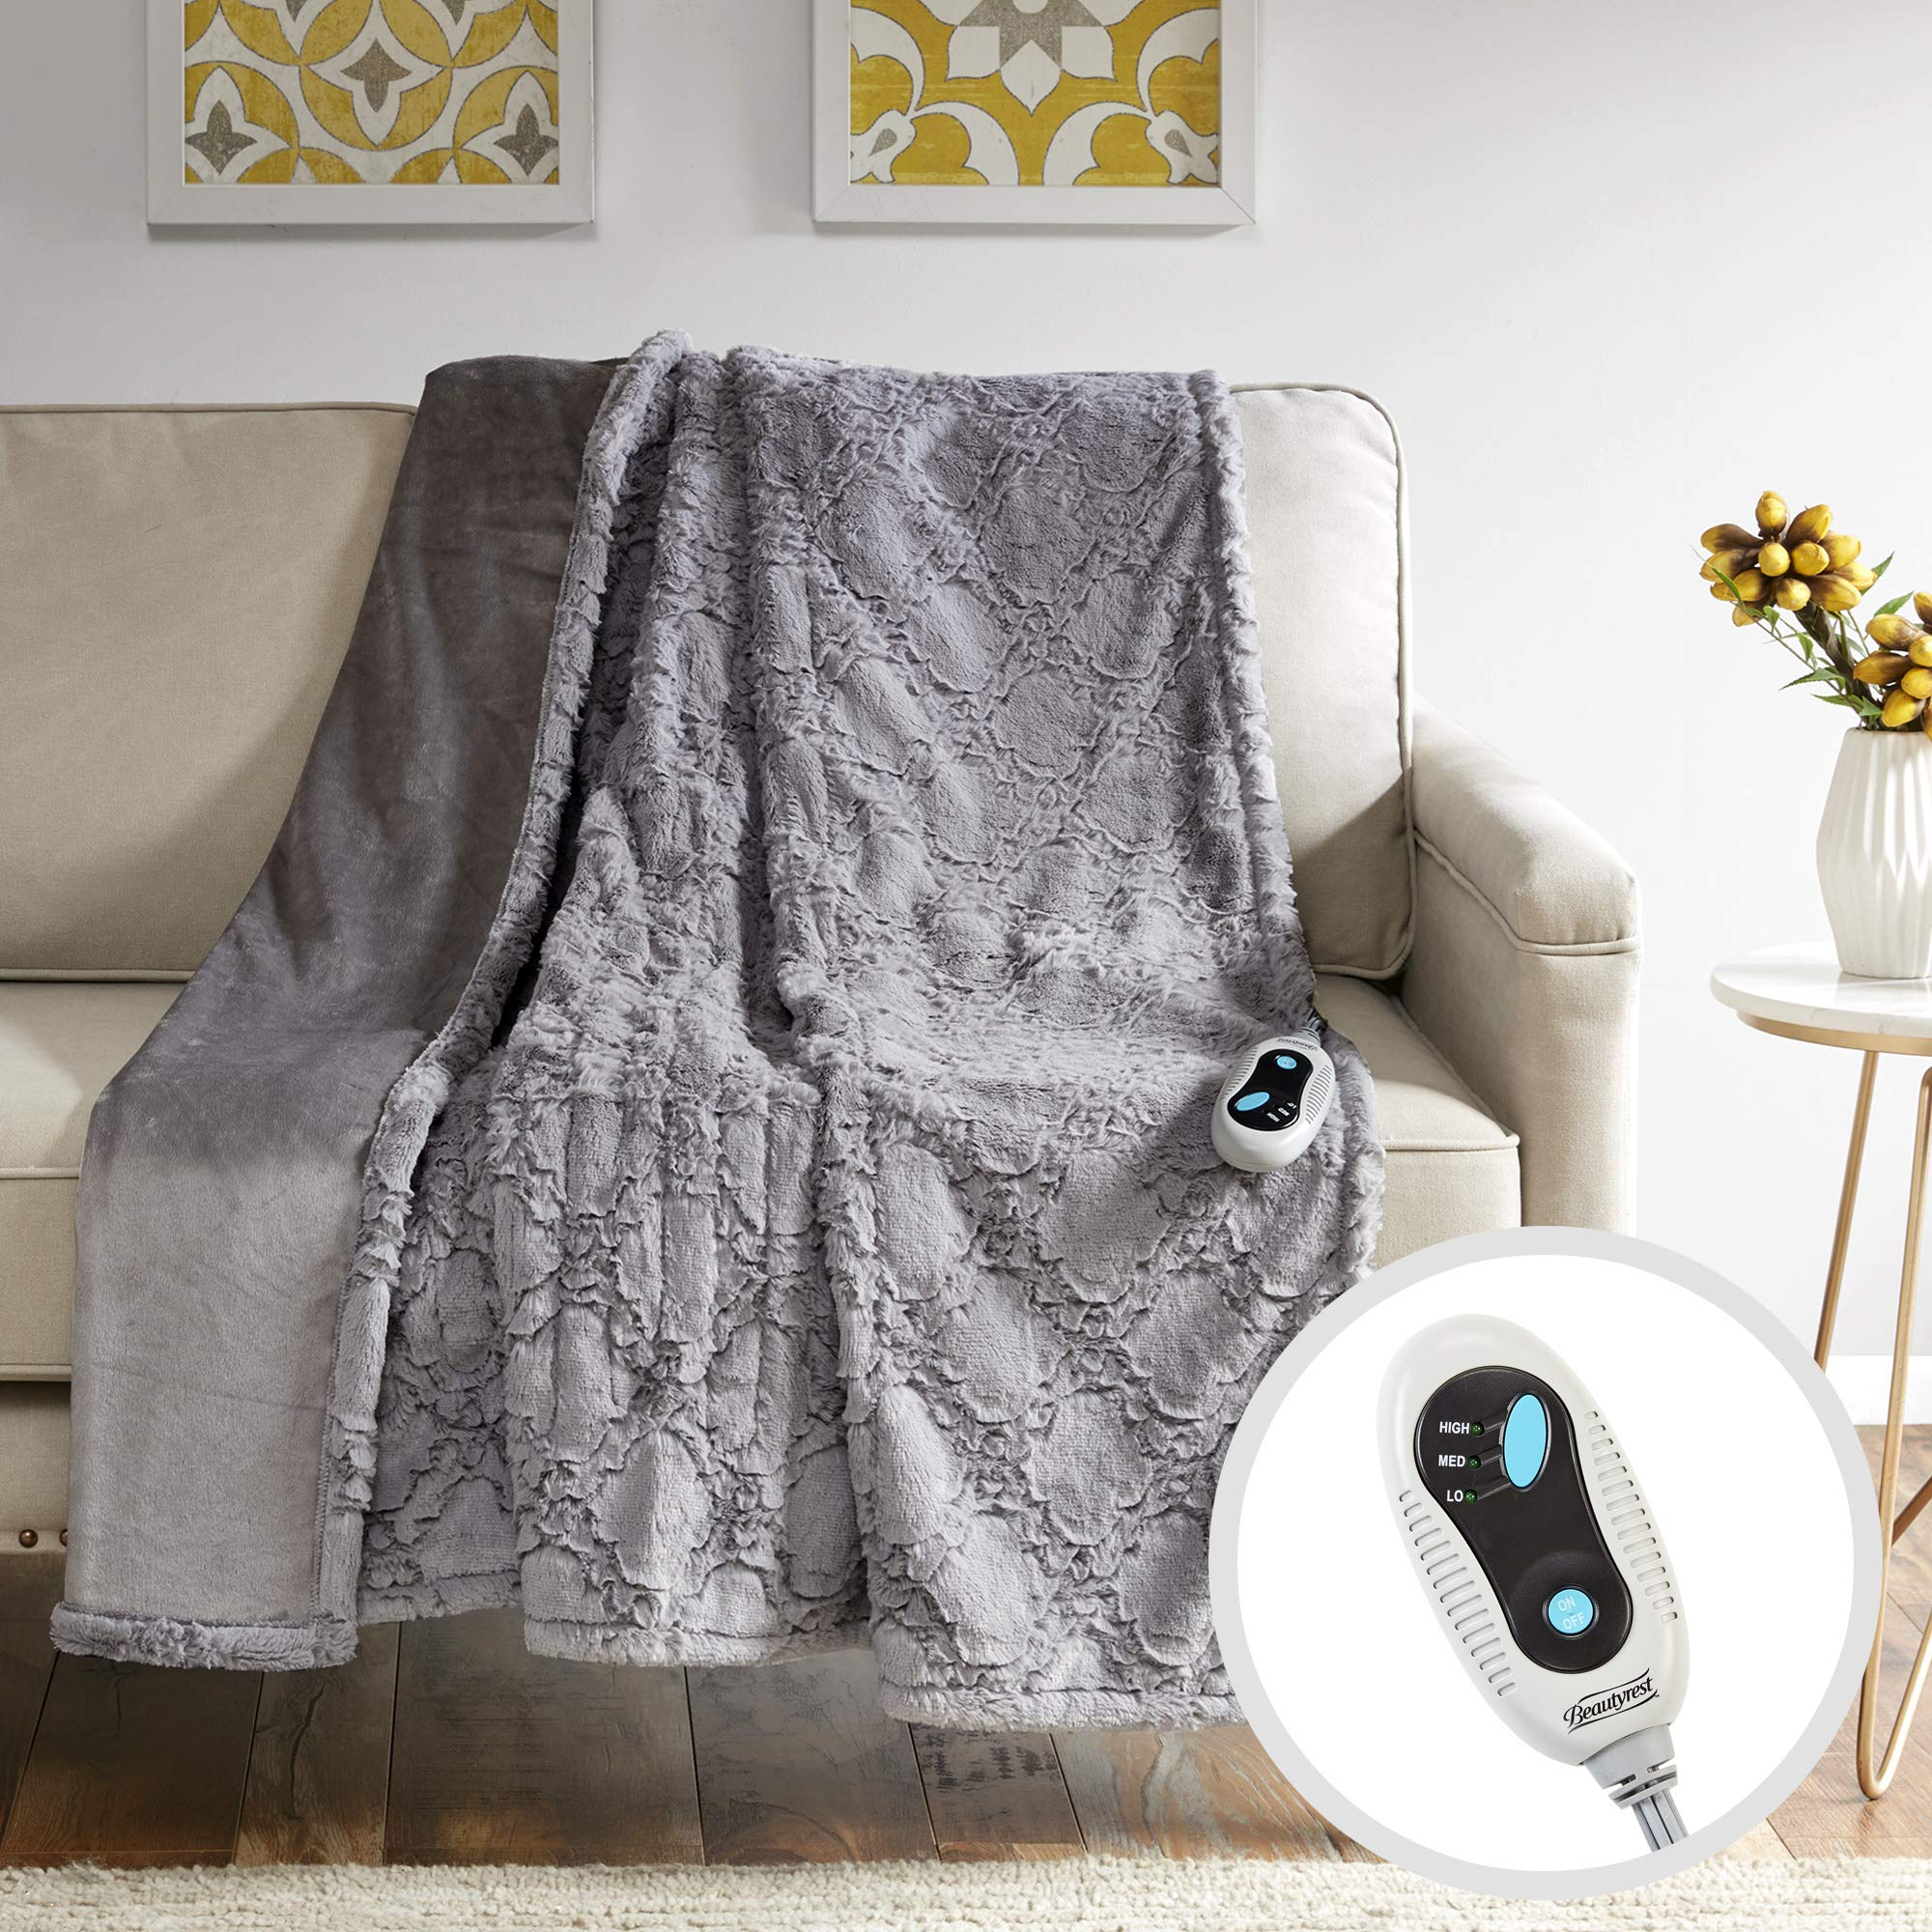 Beautyrest Brushed Long Fur Electric Throw Blanket Ogee Pattern Warm and Soft Heated Wrap with Auto Shutoff, 50'' W x 60'' L, Grey by Beautyrest